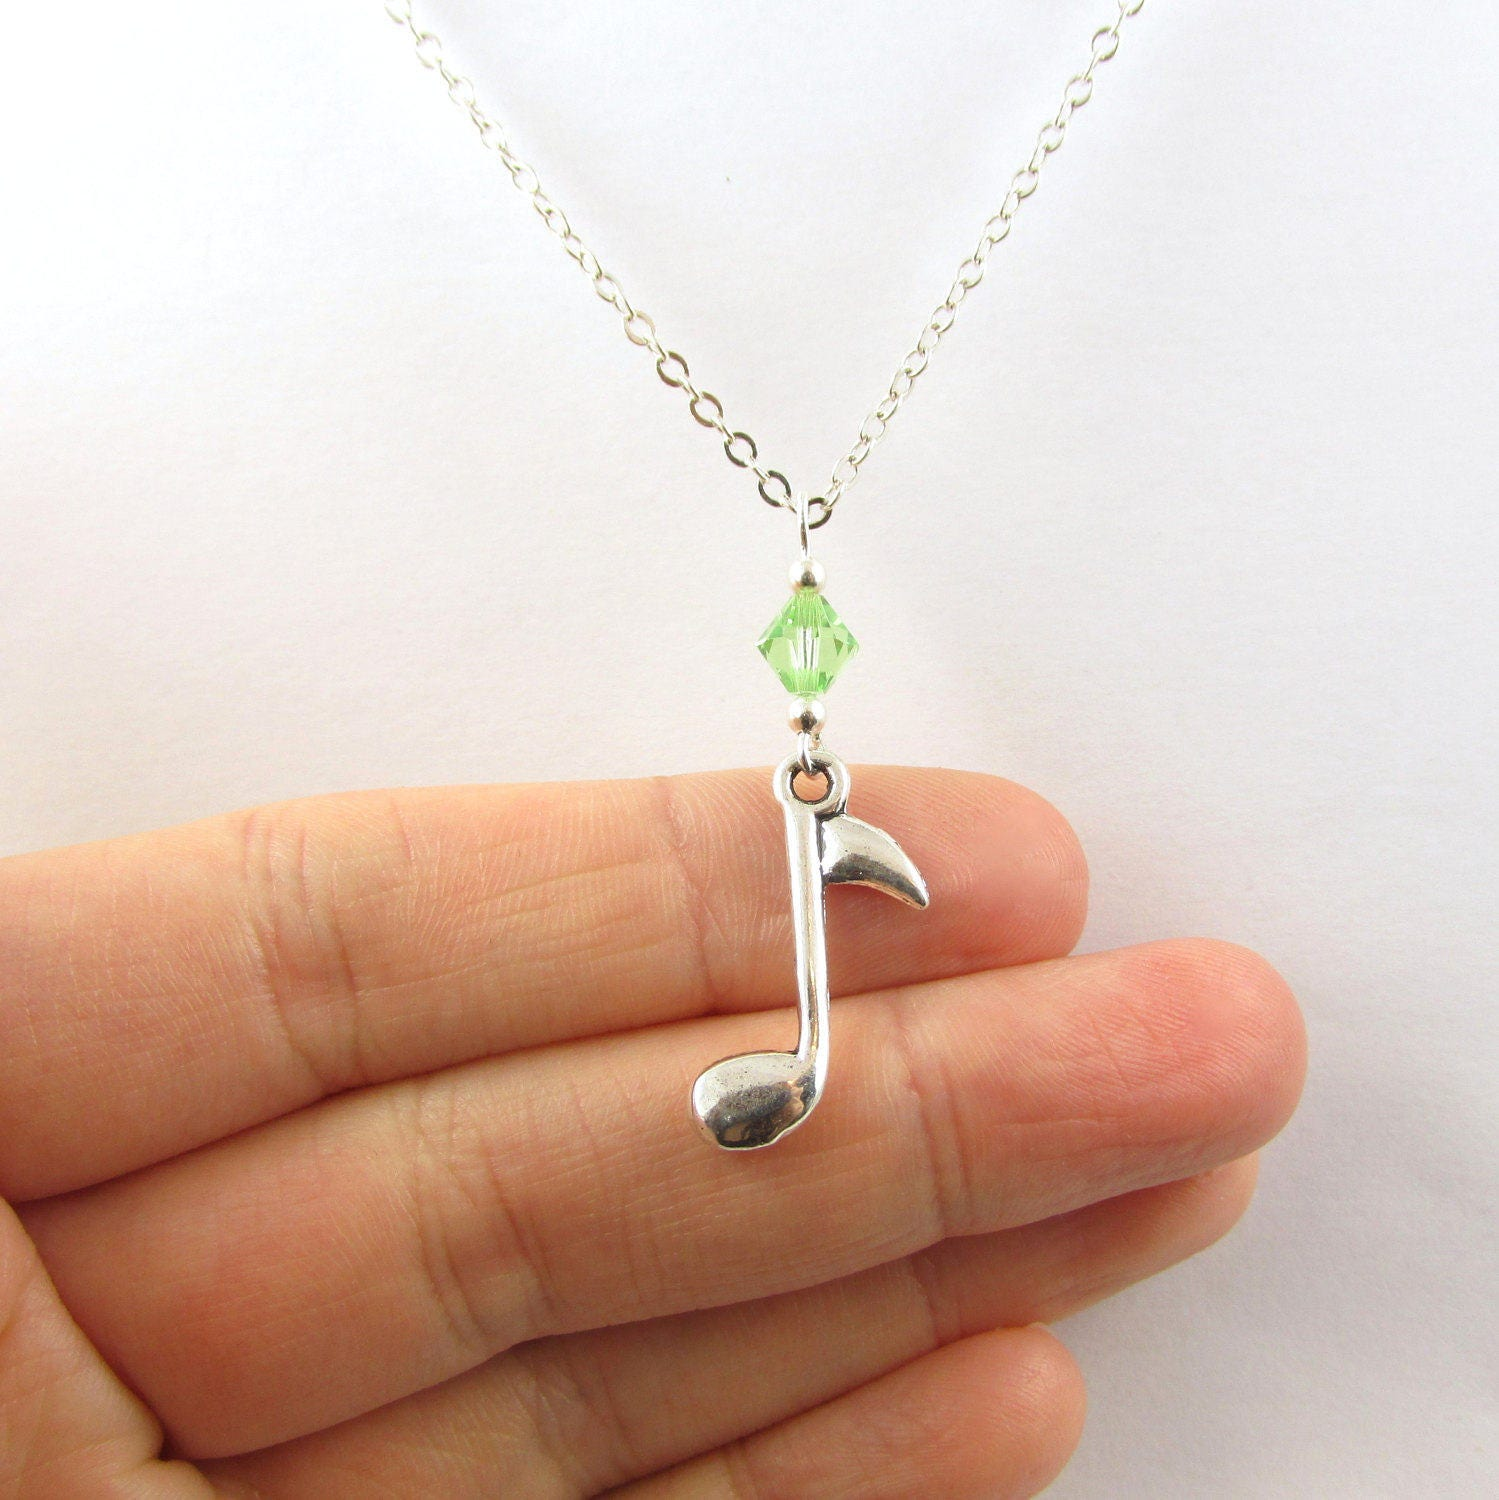 jewellery c original fishpond com online au music pendant from q buy